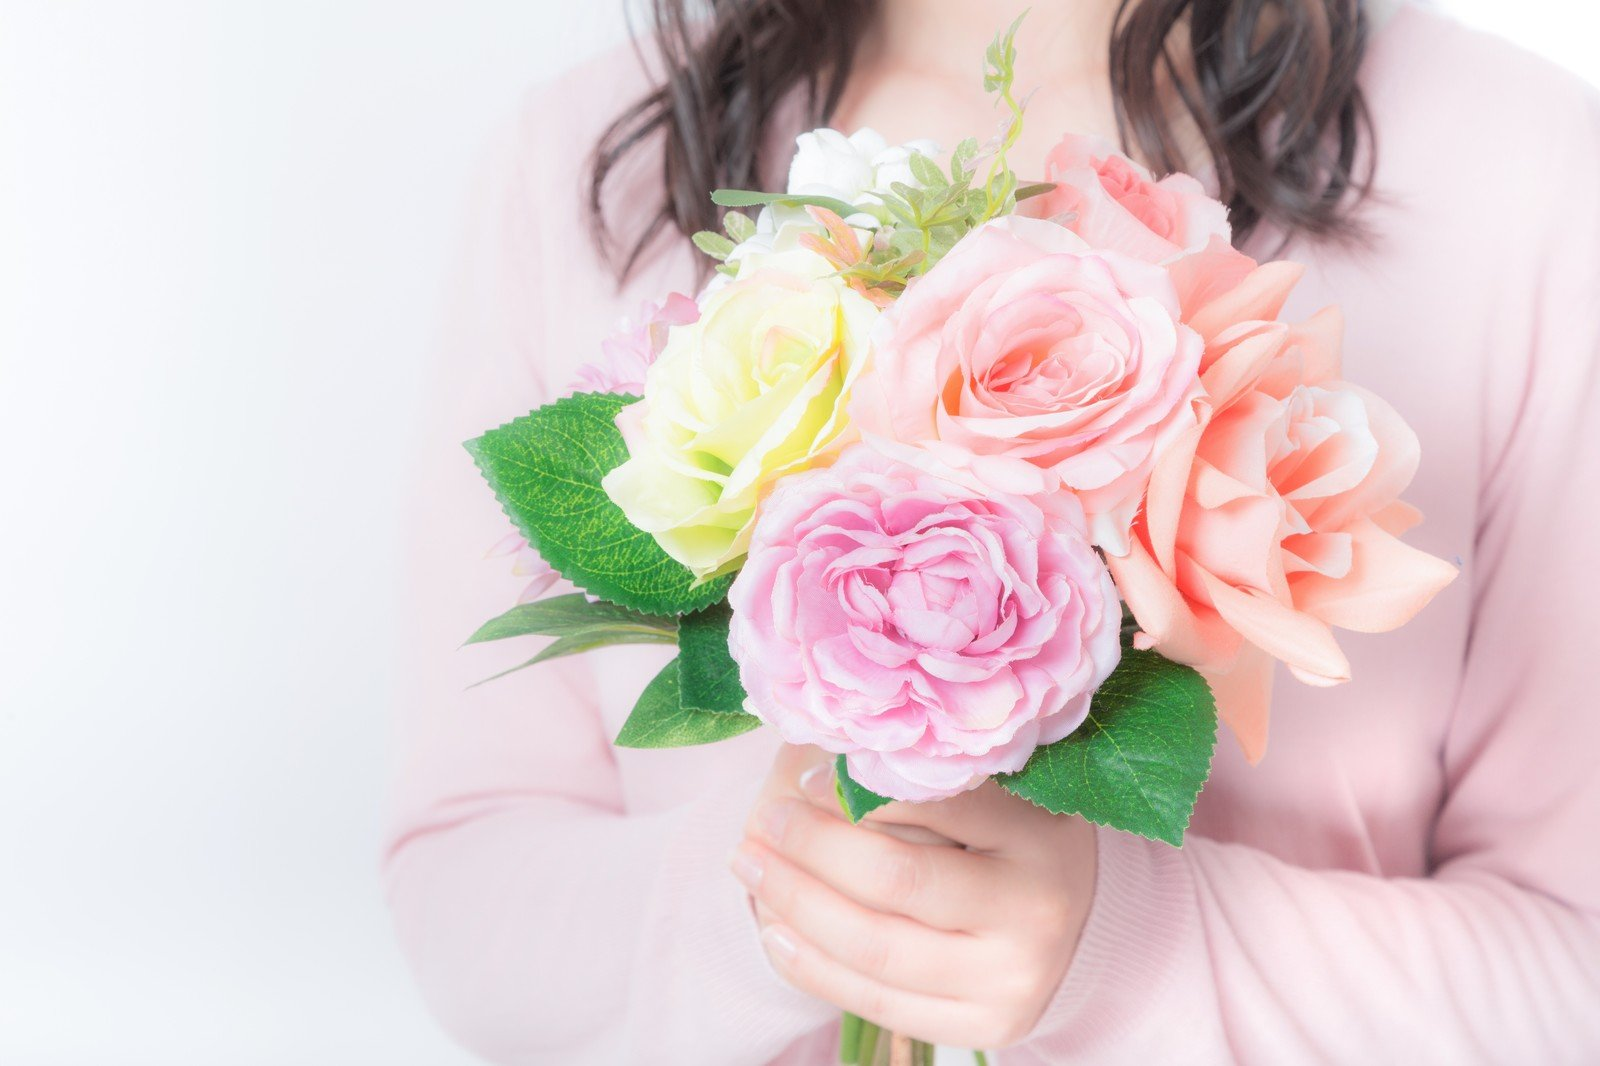 img 5a46a90d41773.png?resize=300,169 - プレゼントに最適!感謝が伝わる花言葉